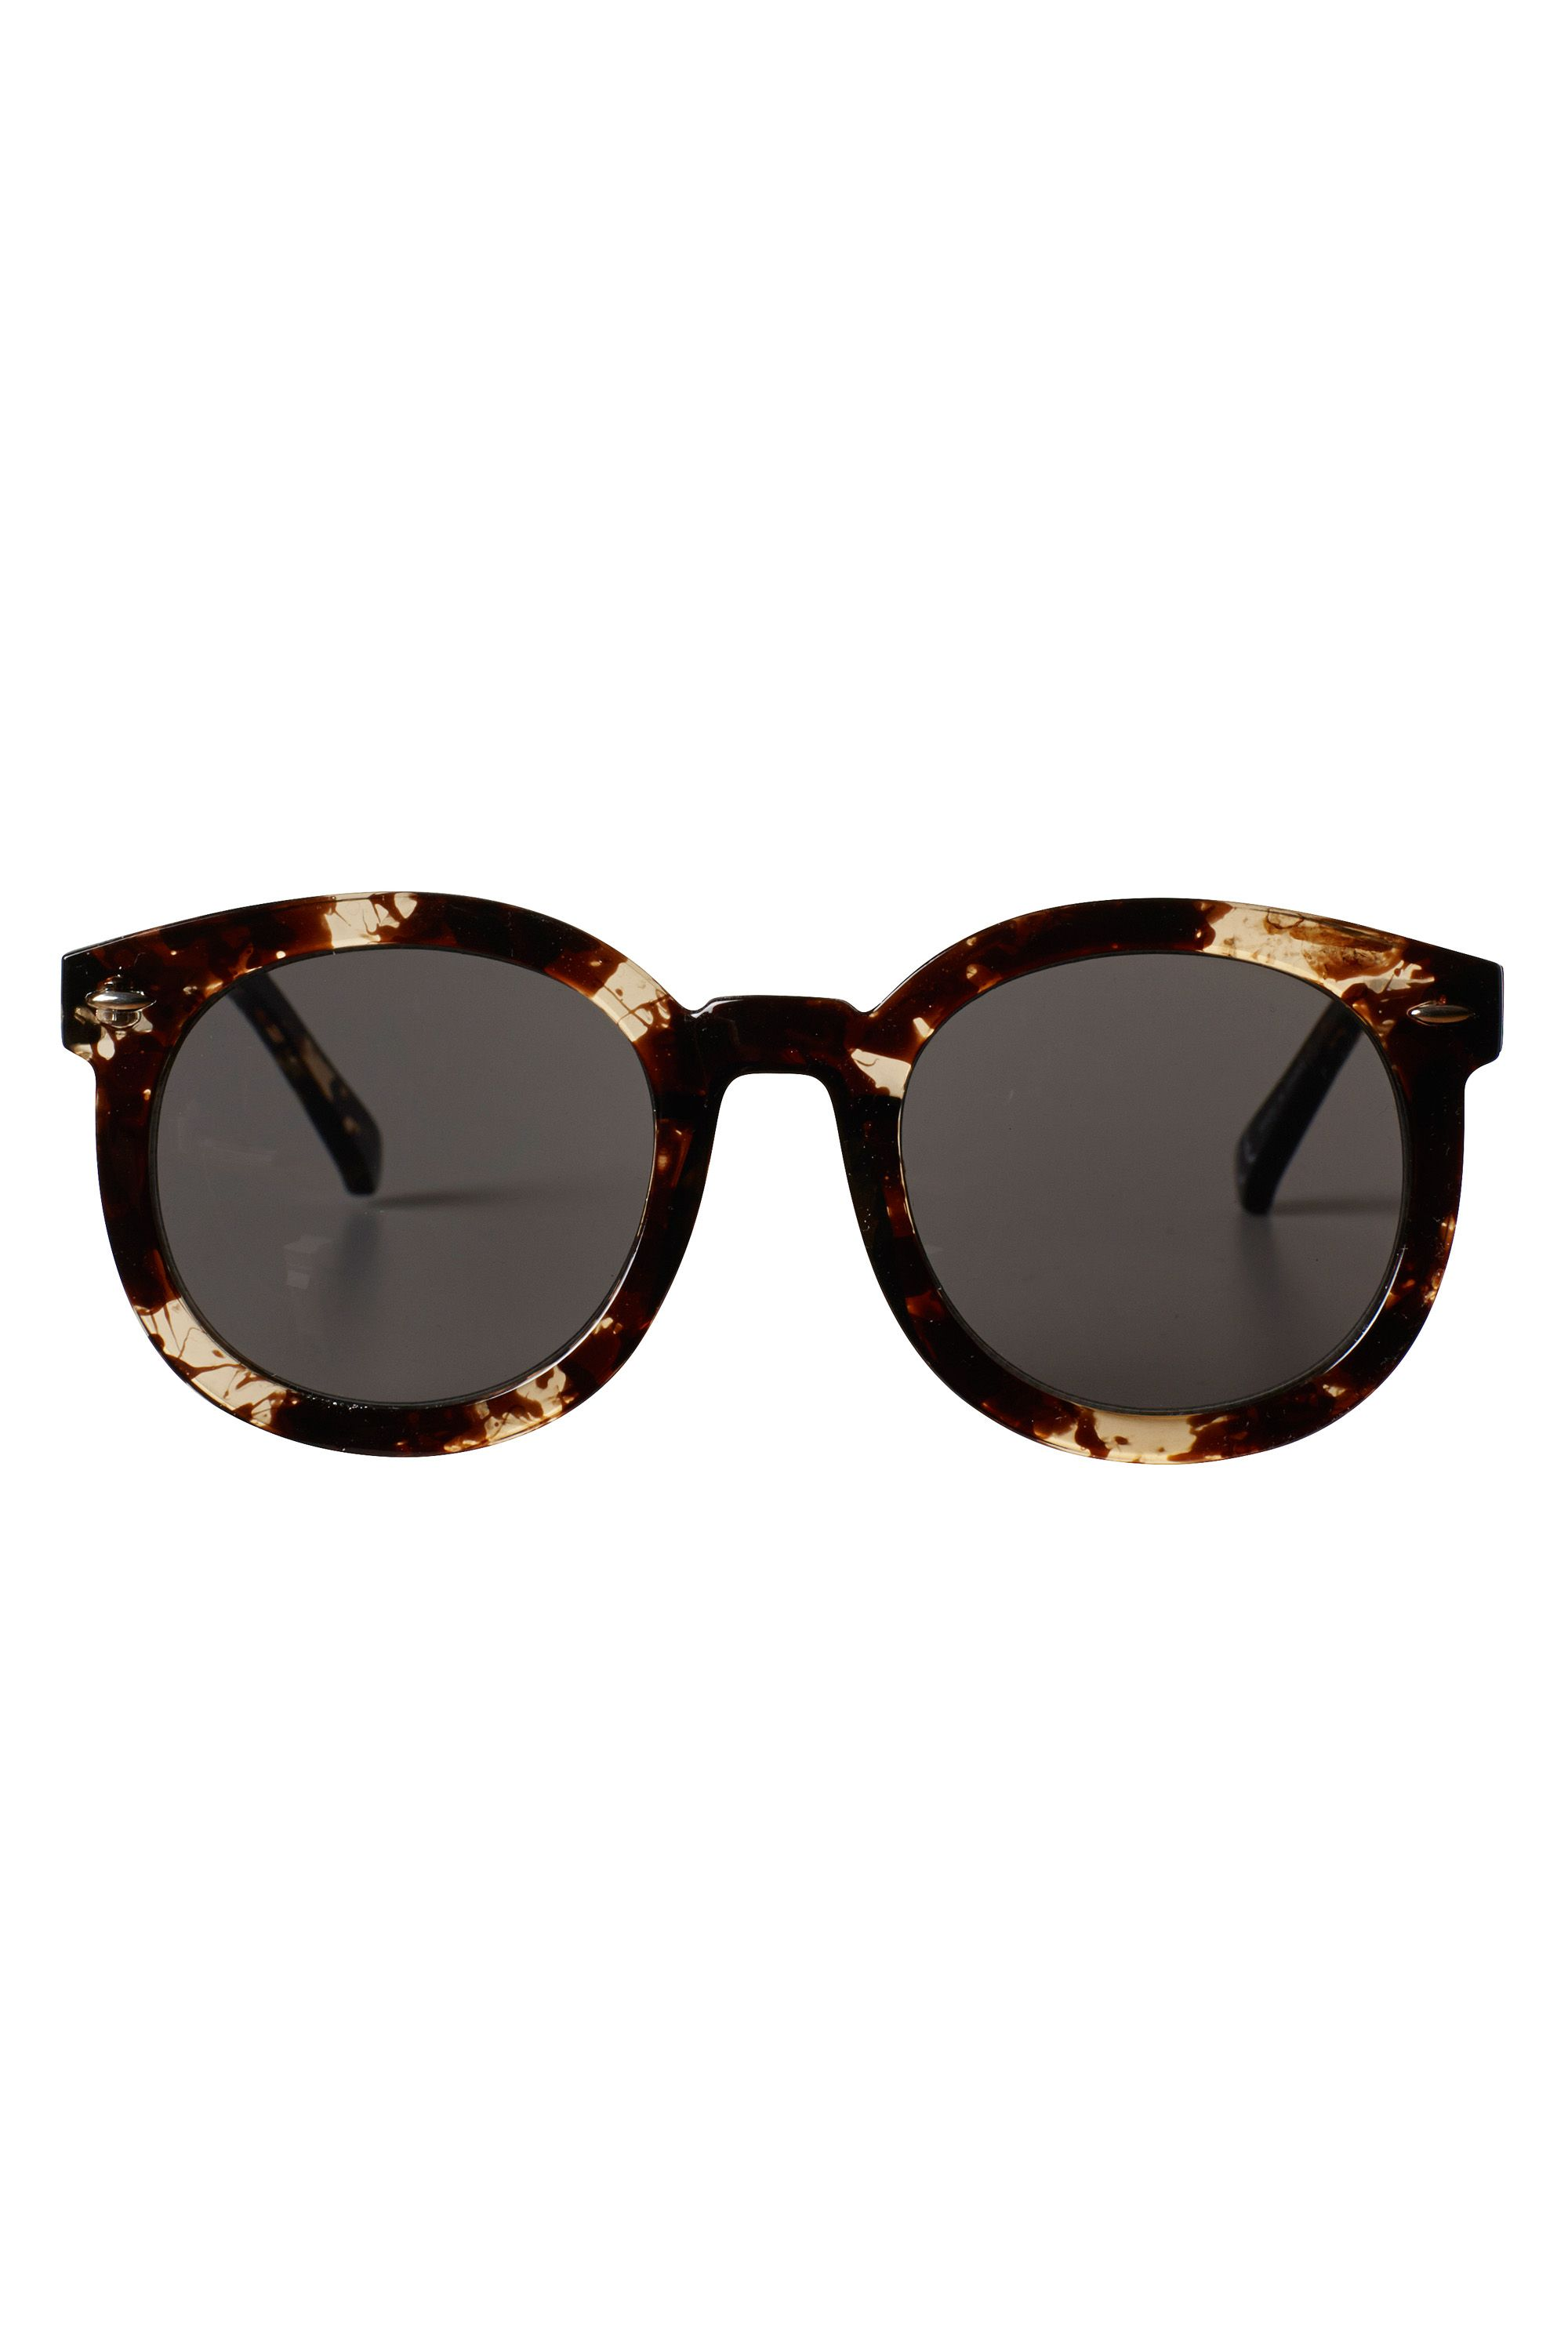 Wow!!Cheap Ray-ban-sunglasses outlet Only  9.99 that you really ... ec996de516